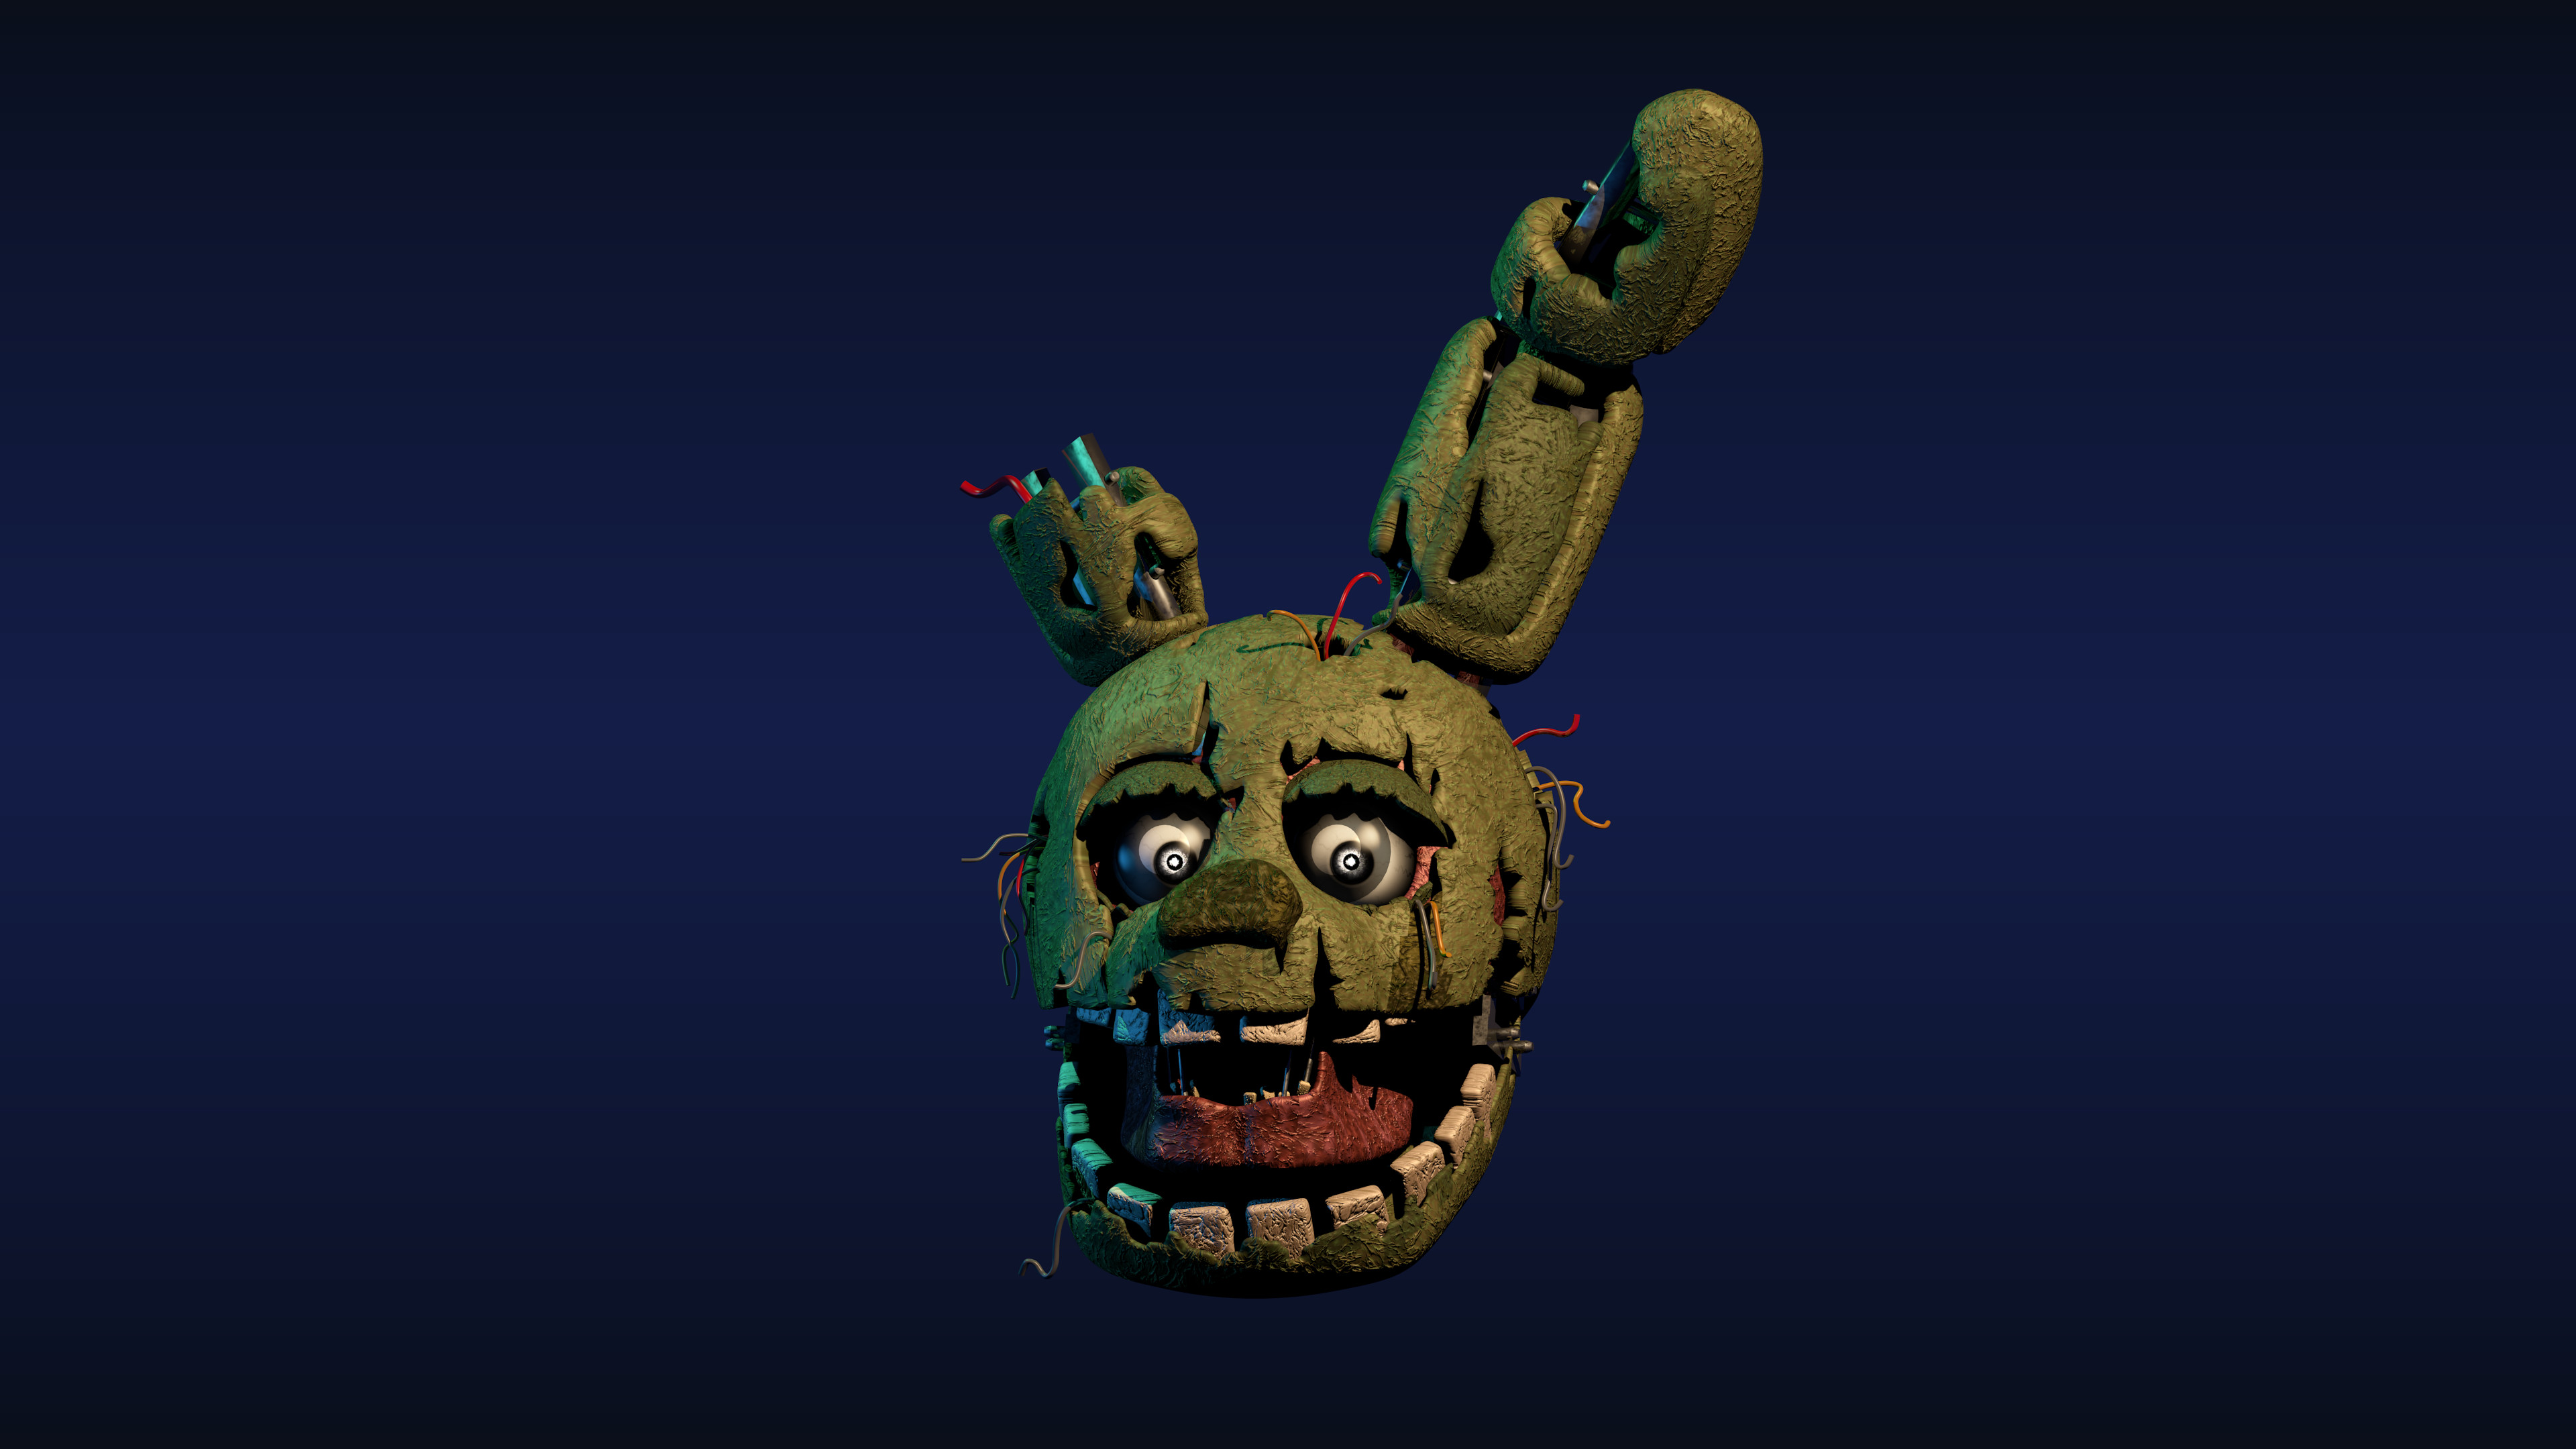 Res: 3840x2160, Springtrap Wallpaper by EverythingAnimations Springtrap Wallpaper by  EverythingAnimations